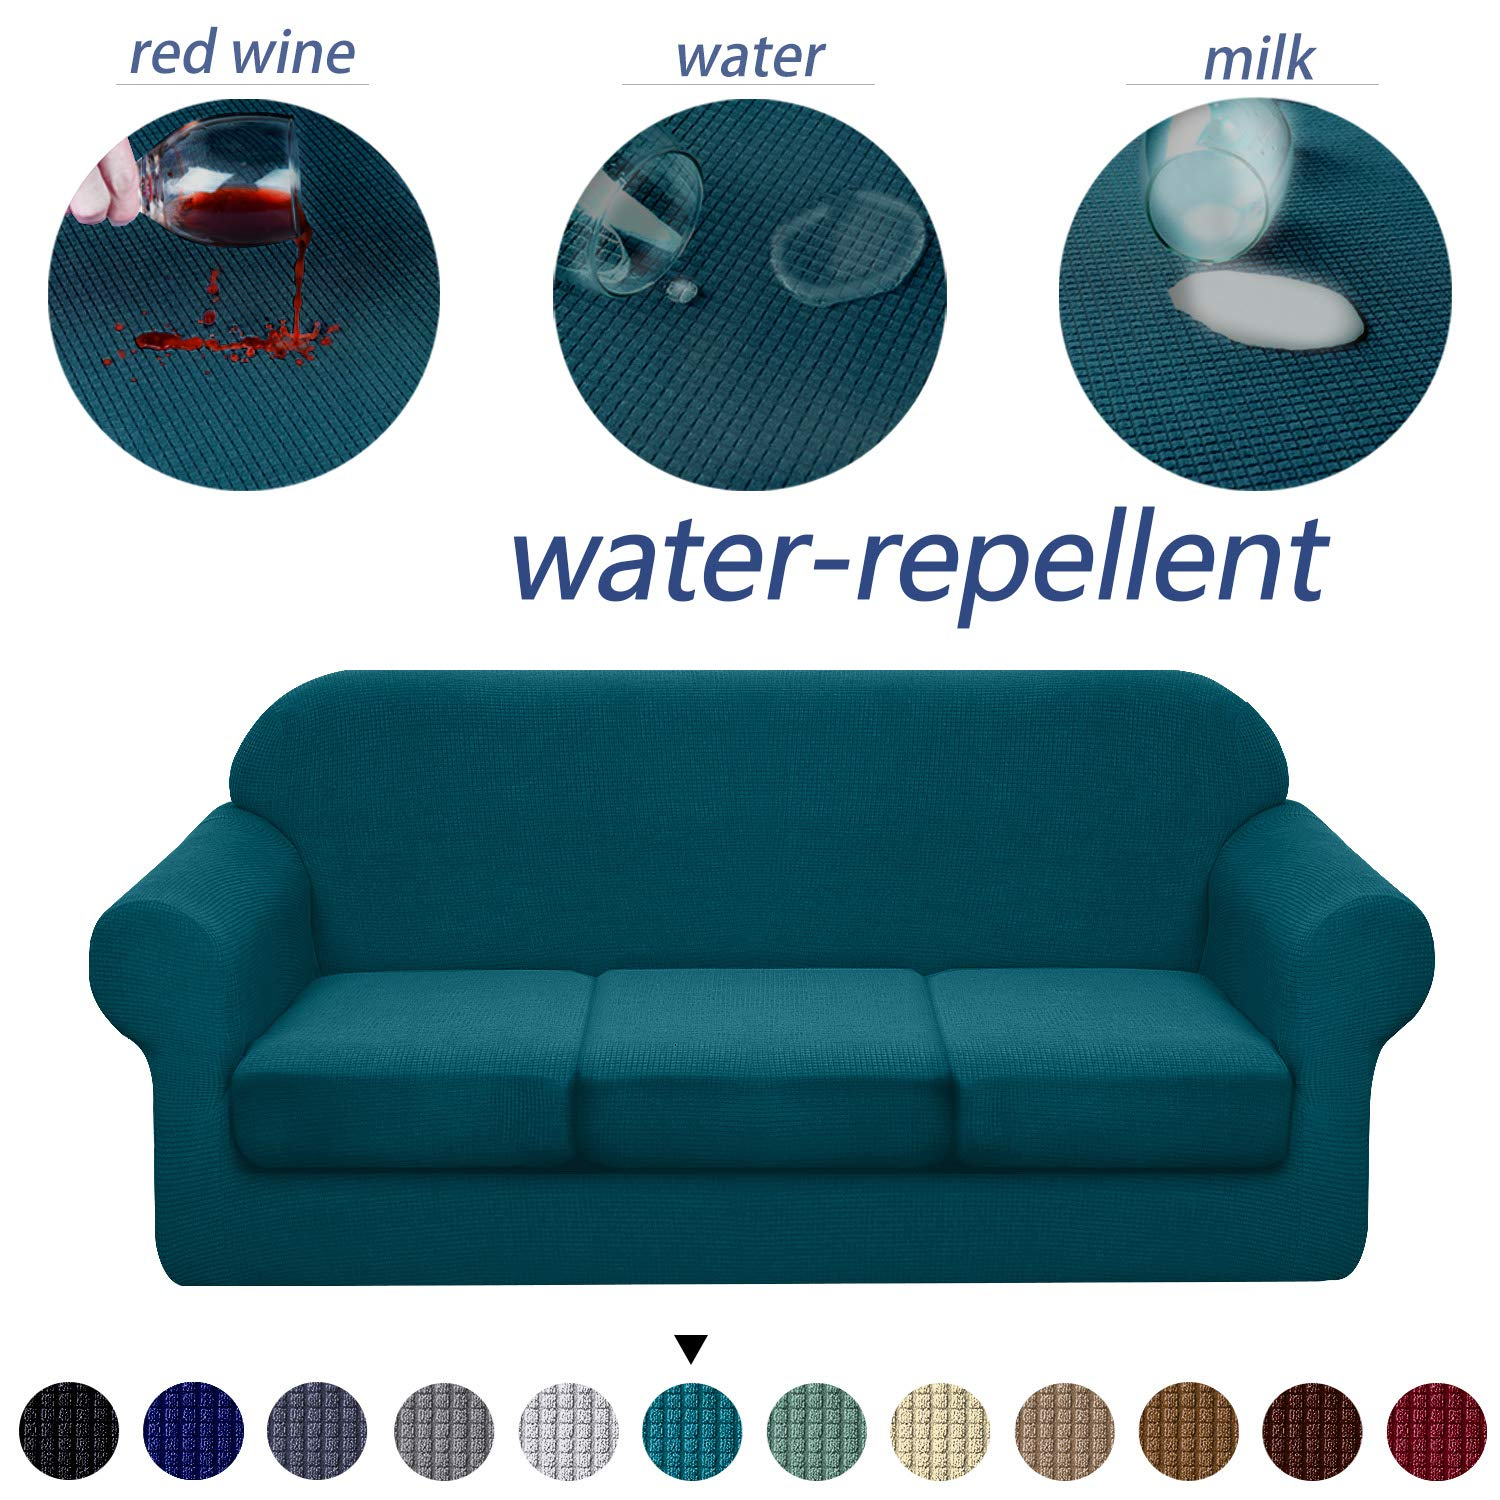 Granbest 4 Piece Premium Water-Repellent Sofa Slipcover for 3 Cushion Couch High Stretch Sofa Cover for 3 Seat Sofa Super Soft Fabric Couch Cover for Dogs Pets Furniture Cover (Large, Blackish Green)